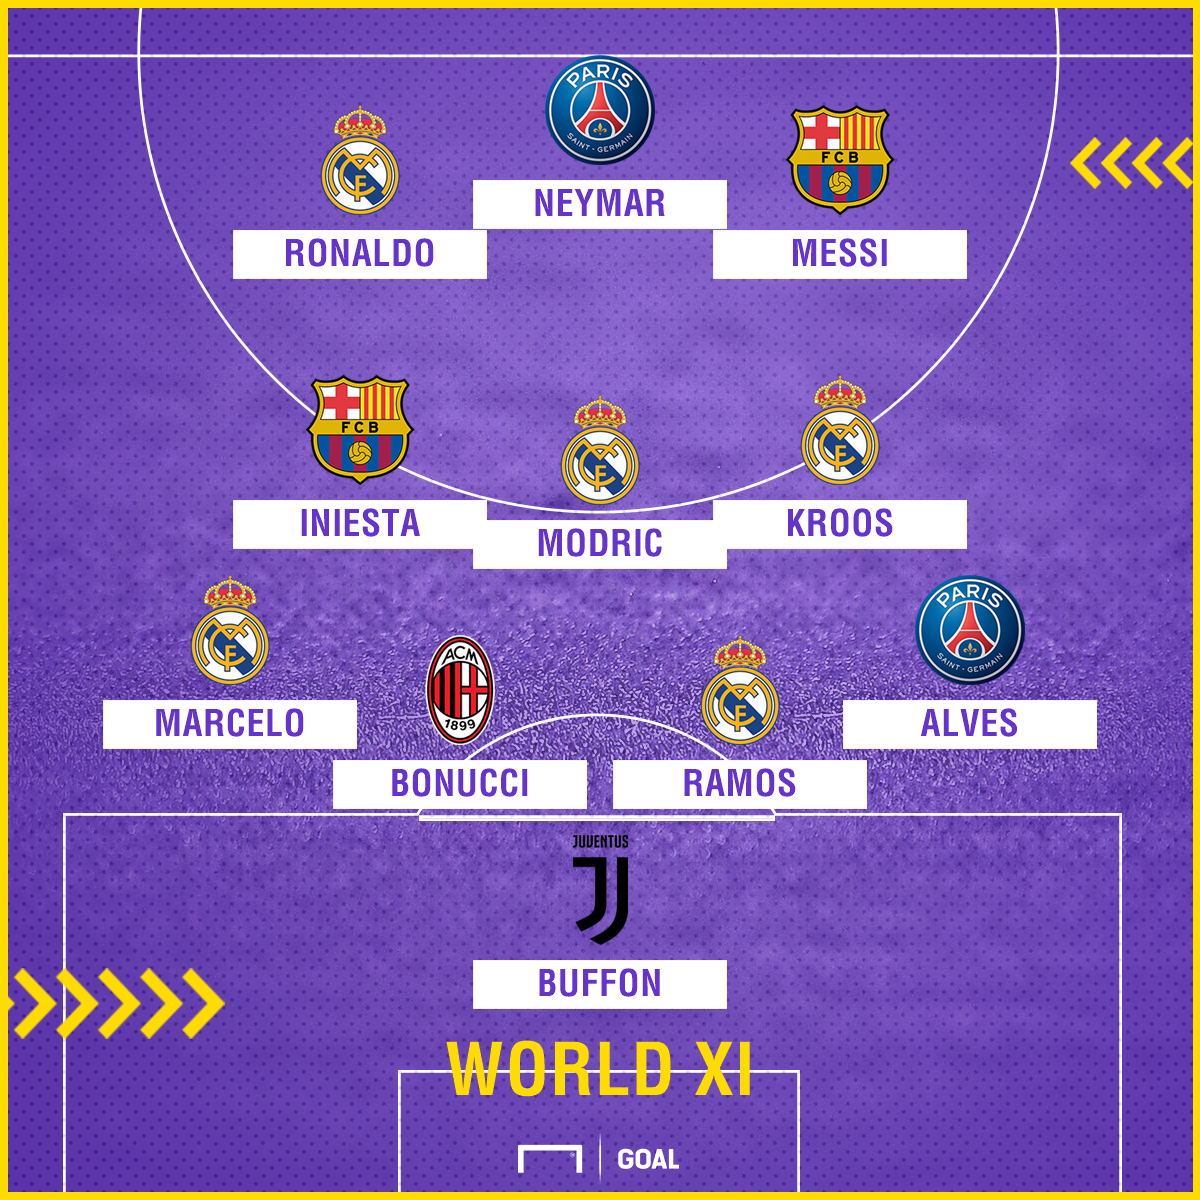 FIFPro World XI 2017